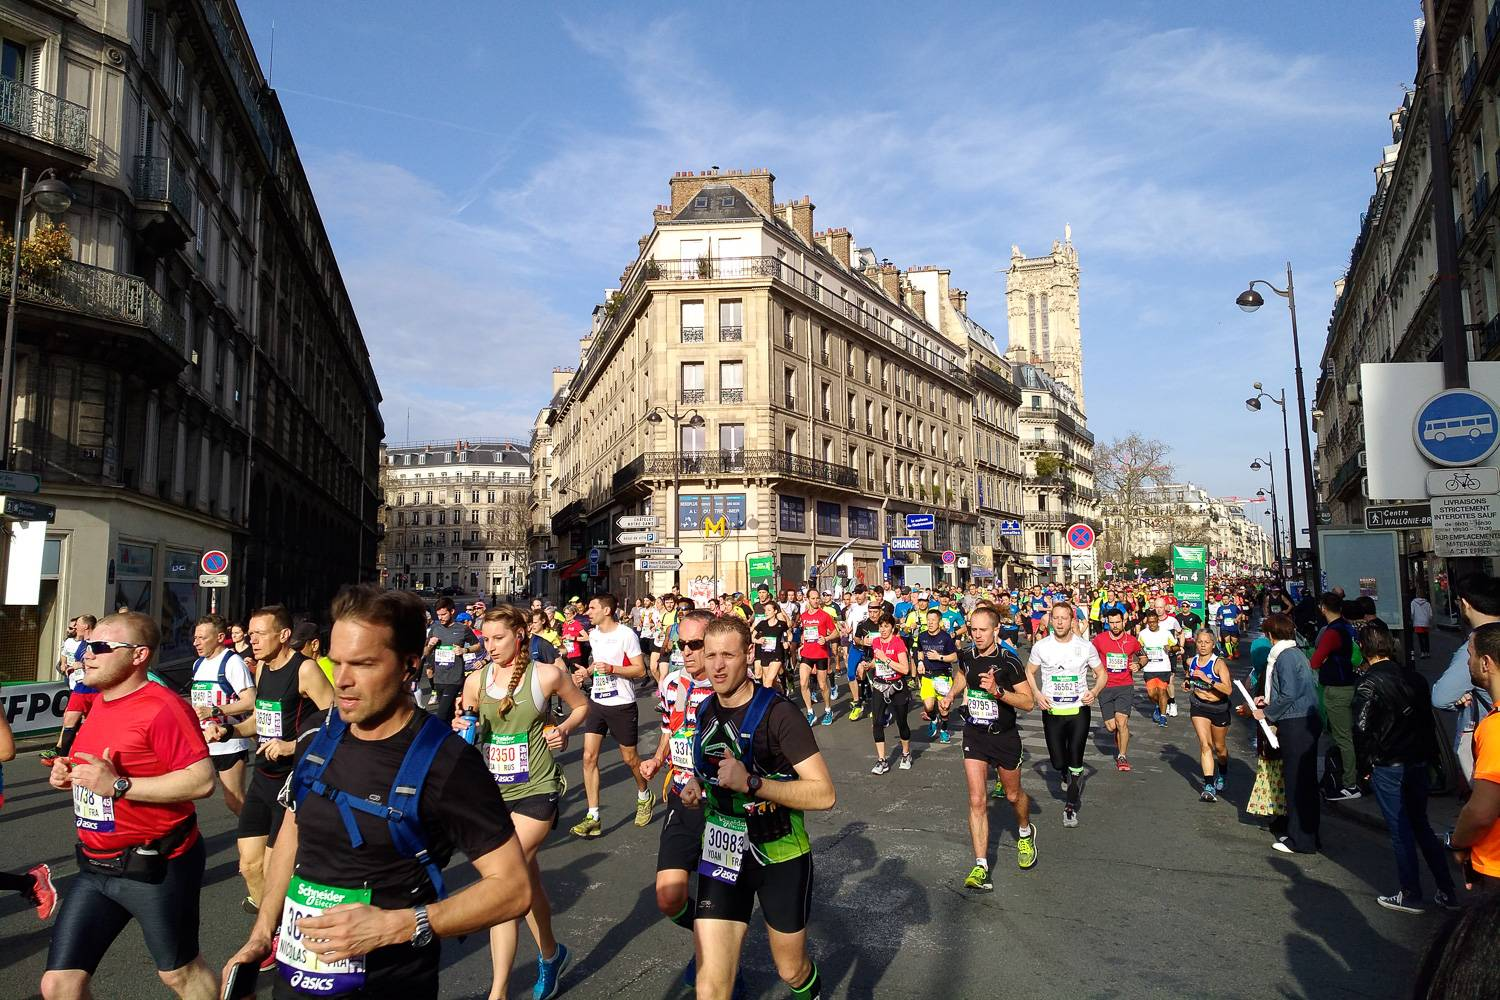 Image of runners in the 2018 Paris Marathon passing a Haussmann building.